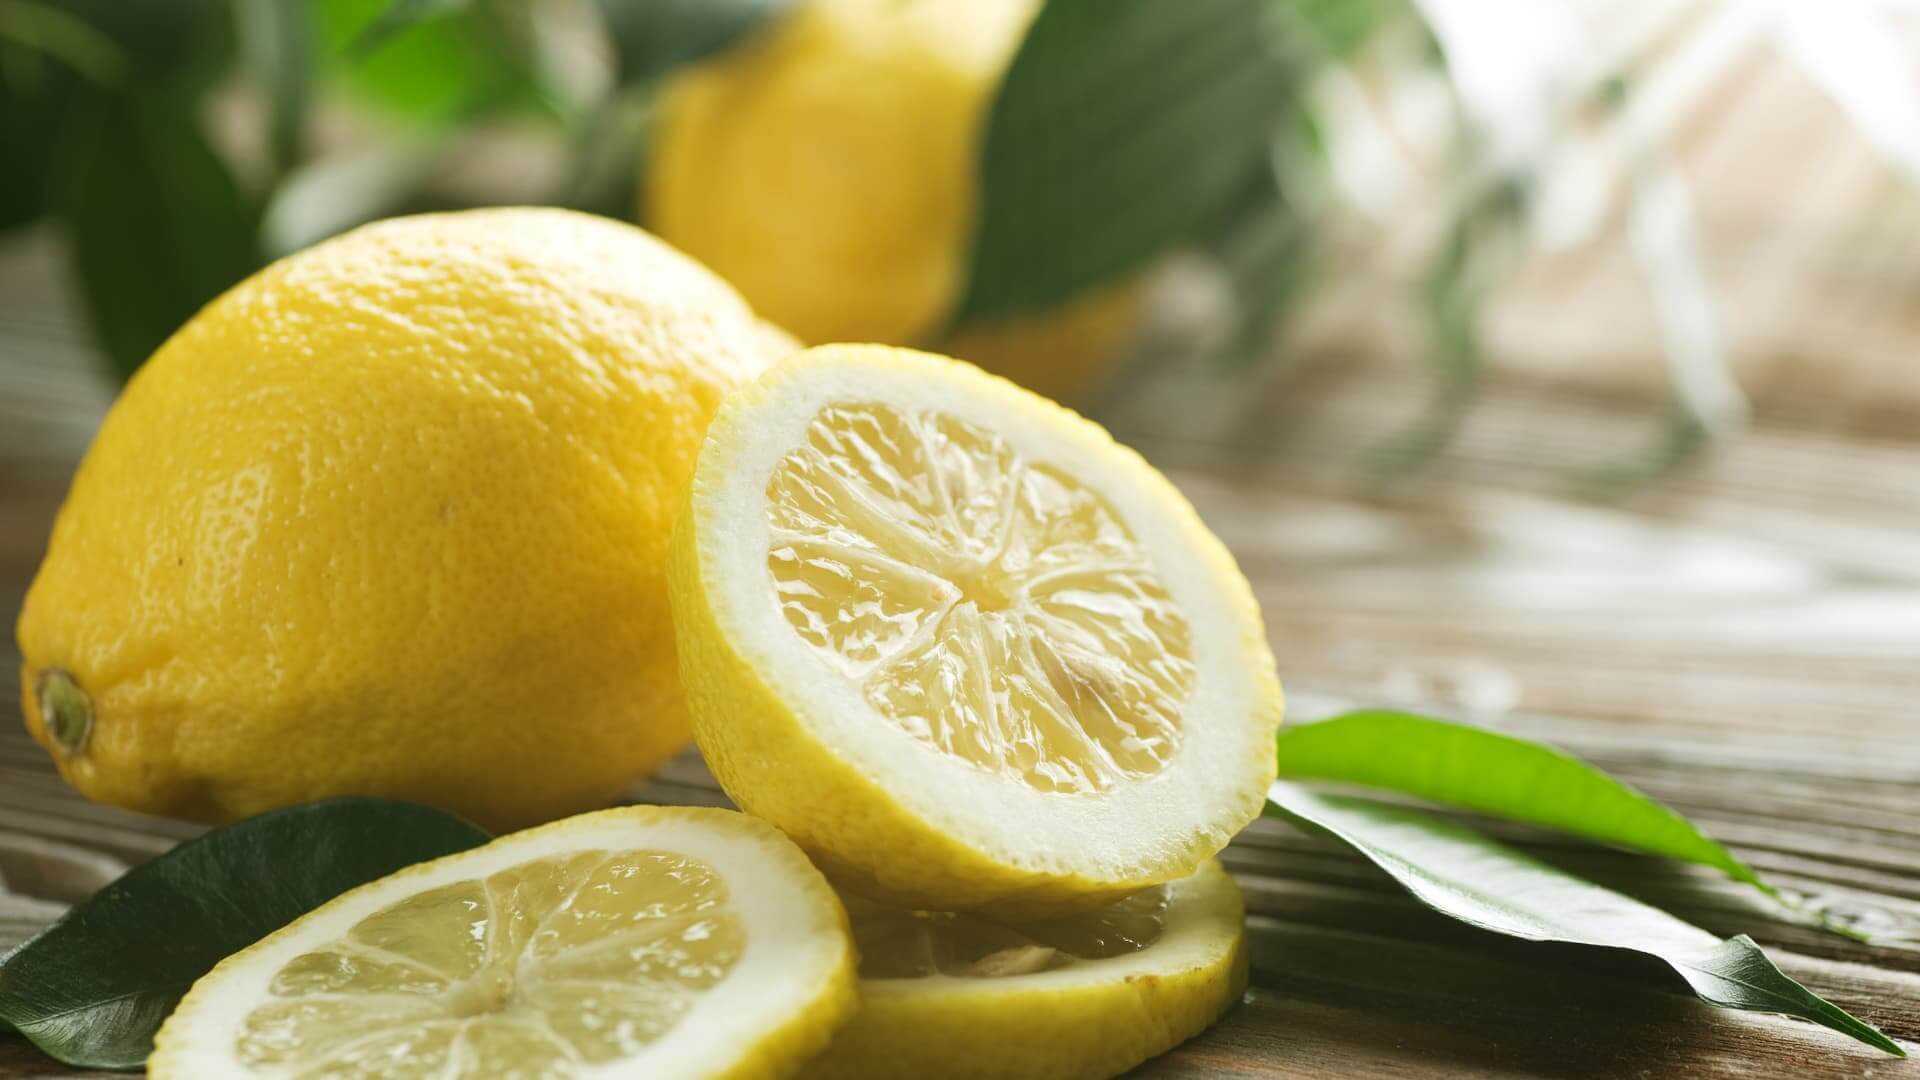 How To Remove Burnt Food Smell From Home With Lemon Slices